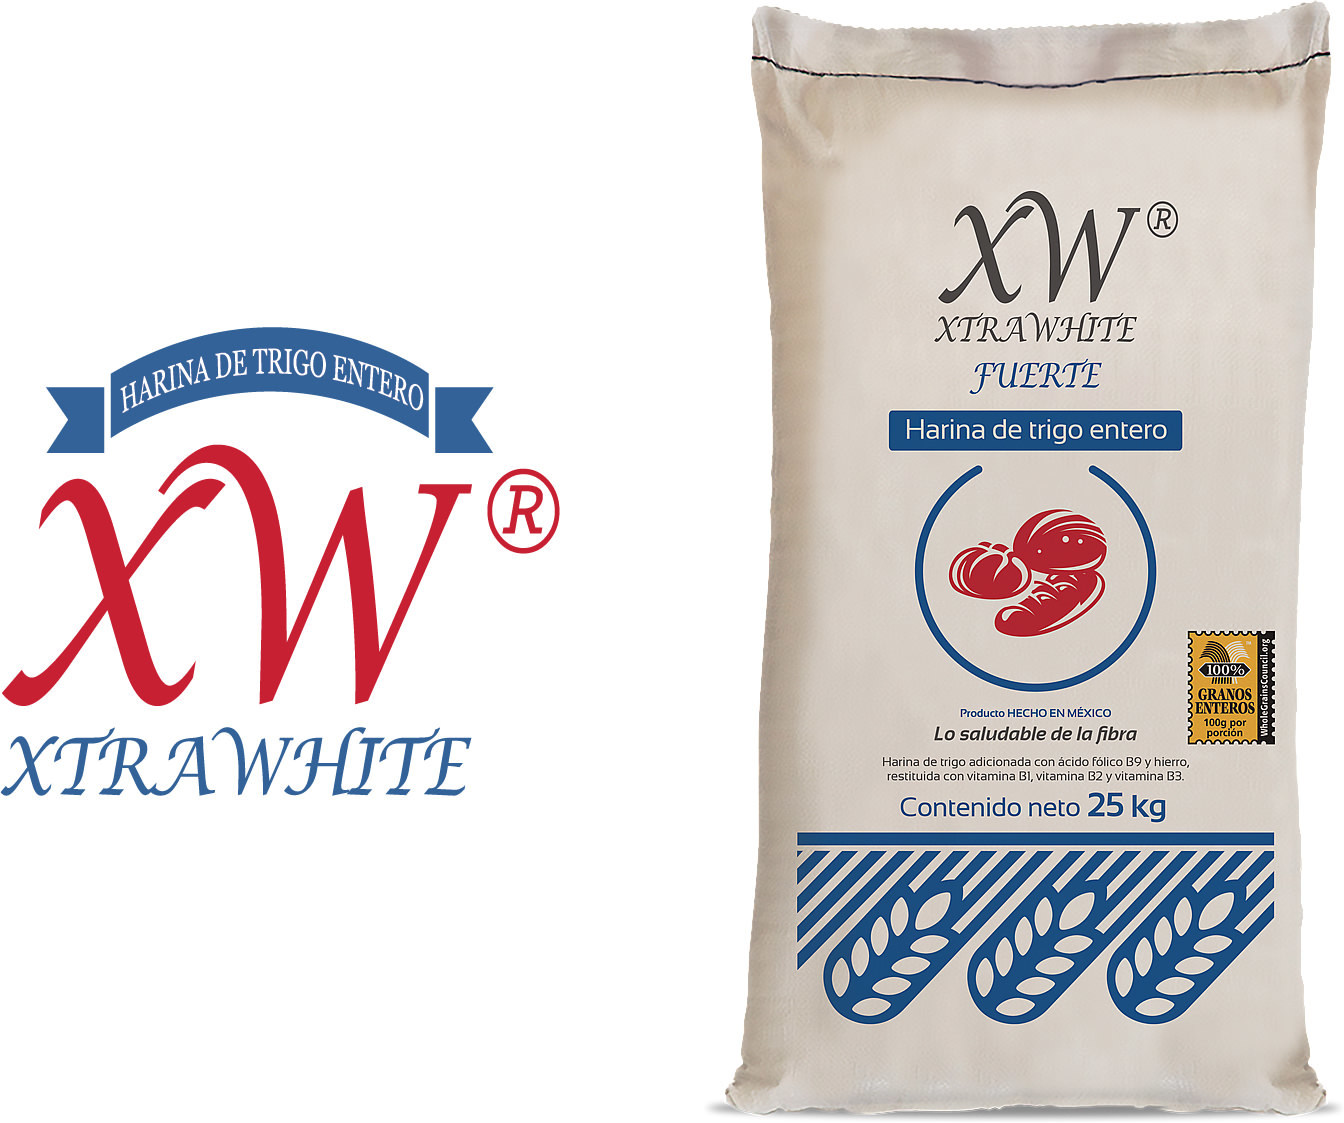 XtraWhite is a whole wheat multi-purpose flour.